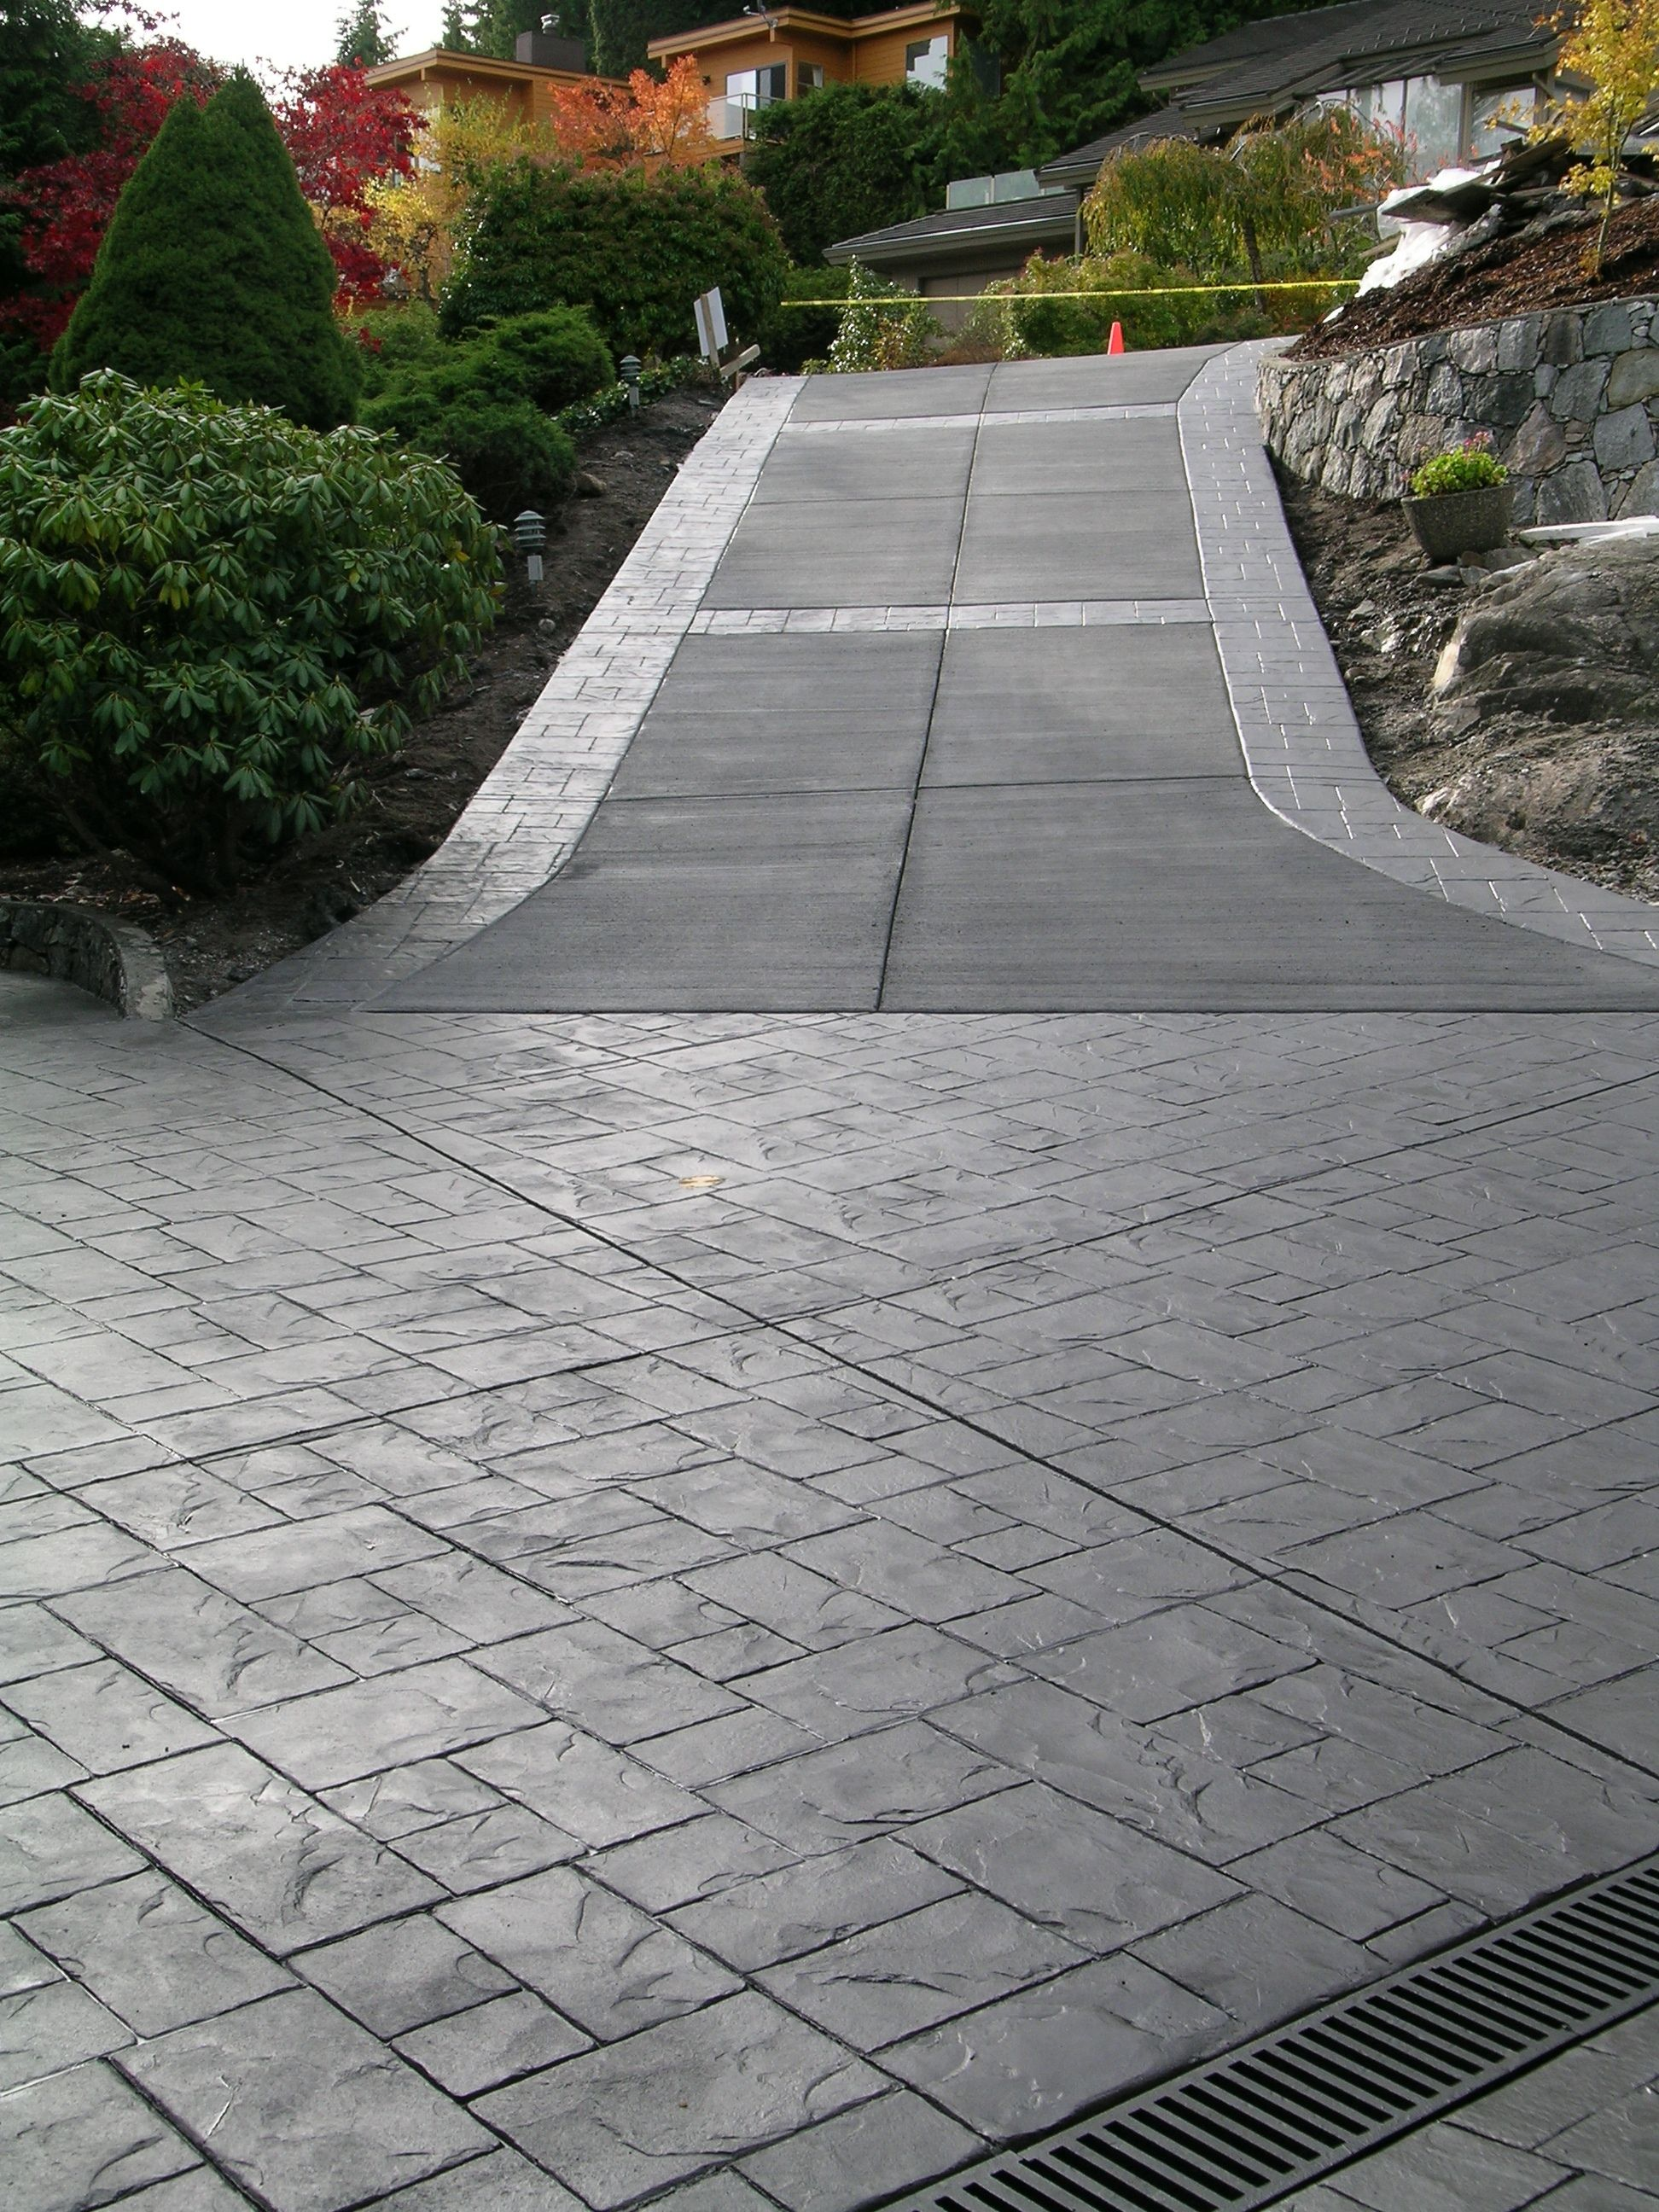 Stamped Concrete Driveways : Stamped concrete driveway in brick pattern